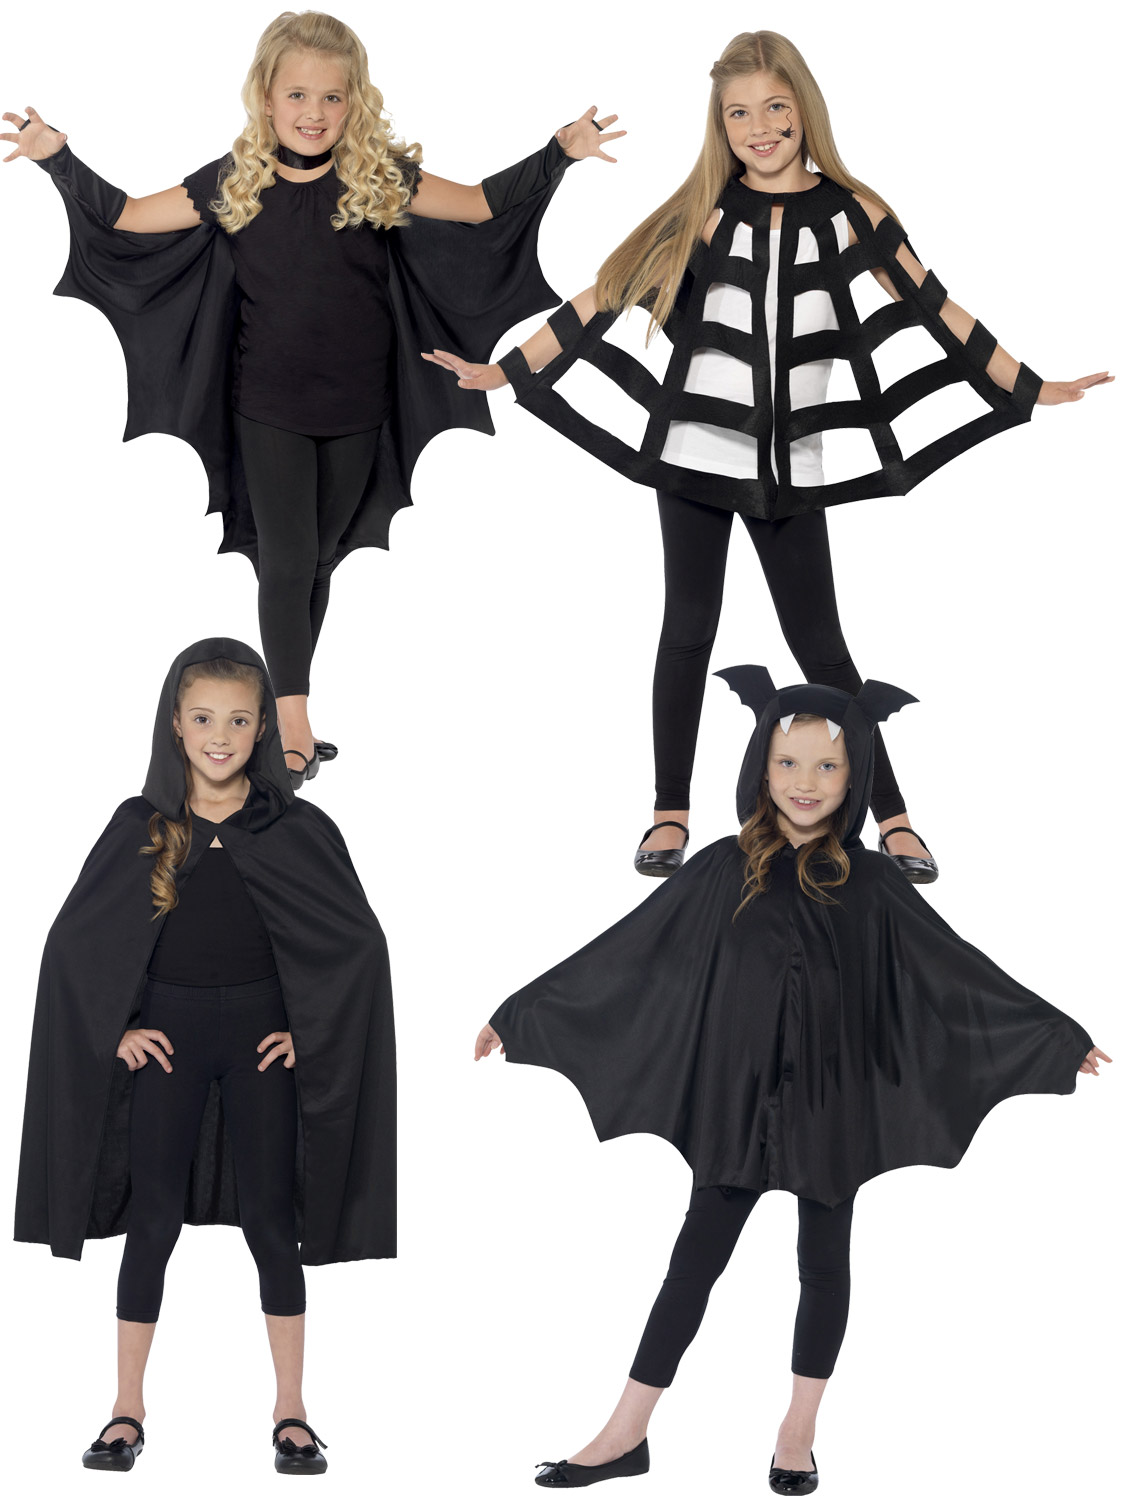 Kids Black Hooded Cloak